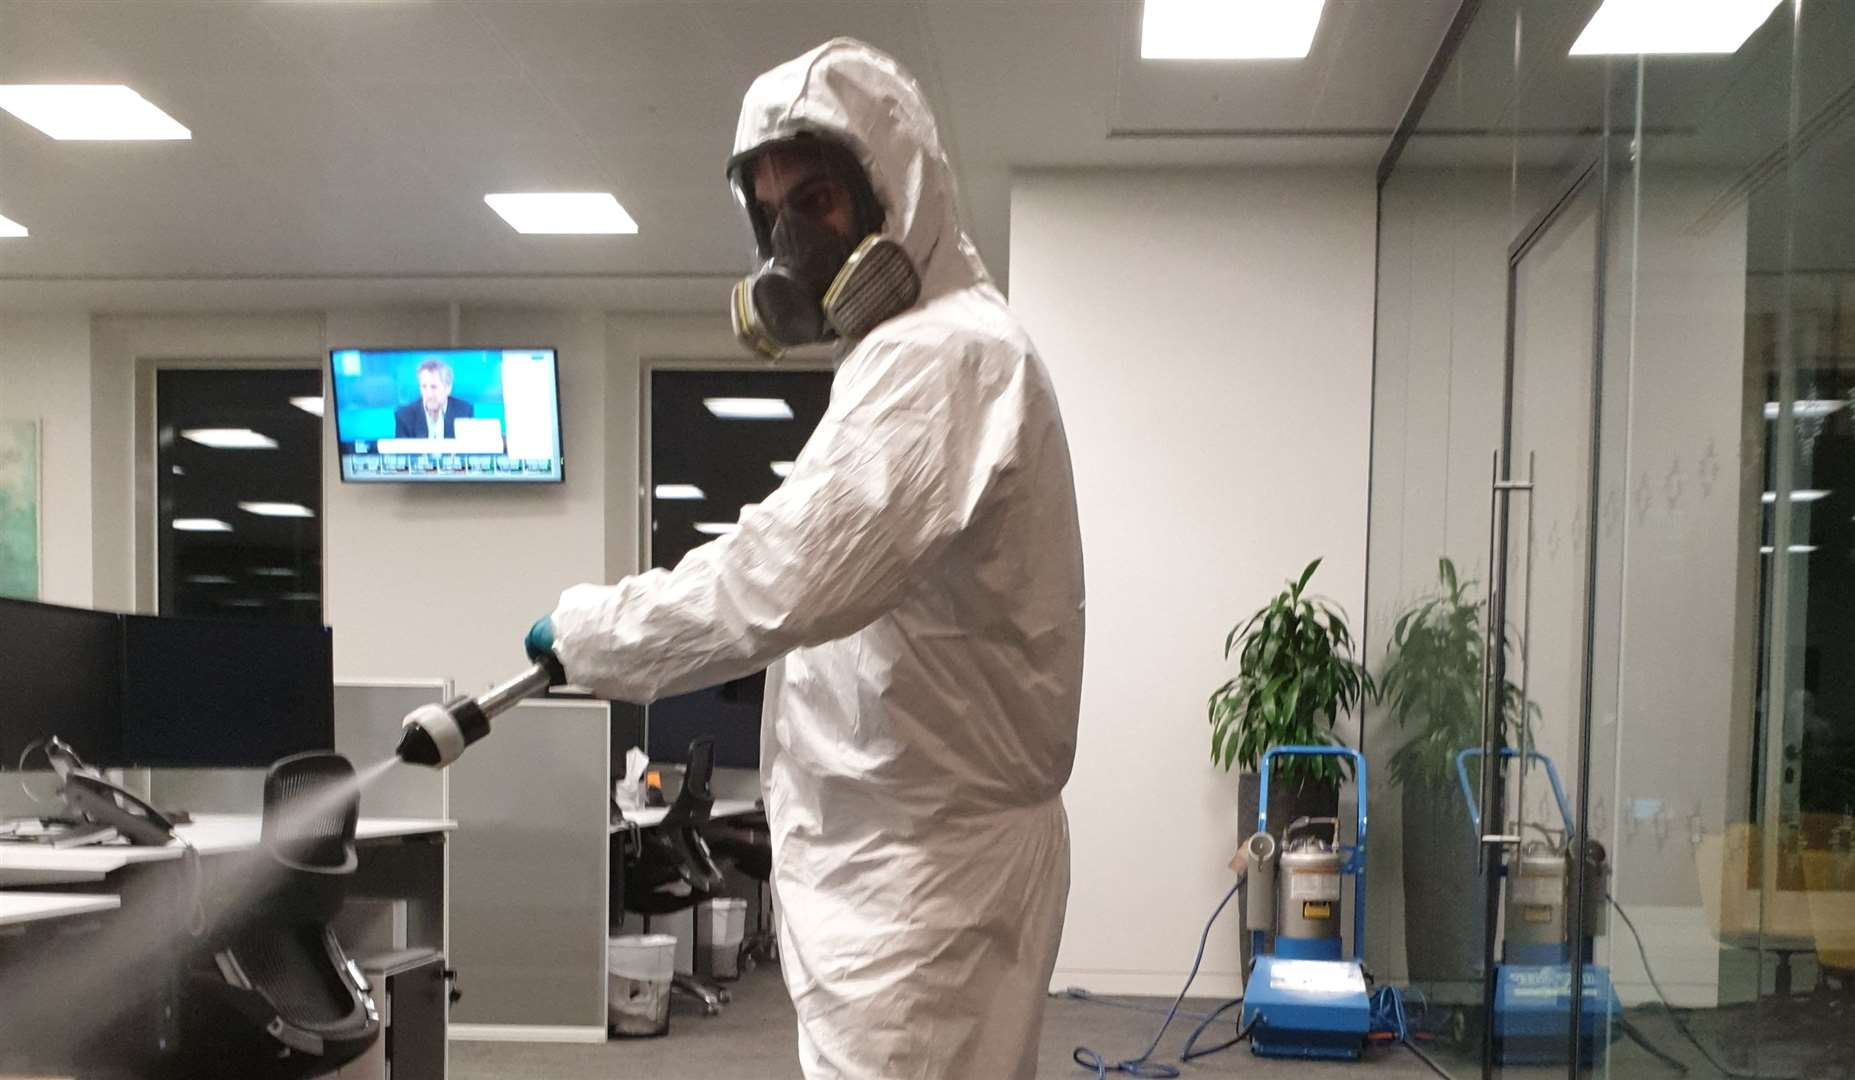 Adam Bourgeois wears protective clothing during cleaning. Credit: Ideal Response